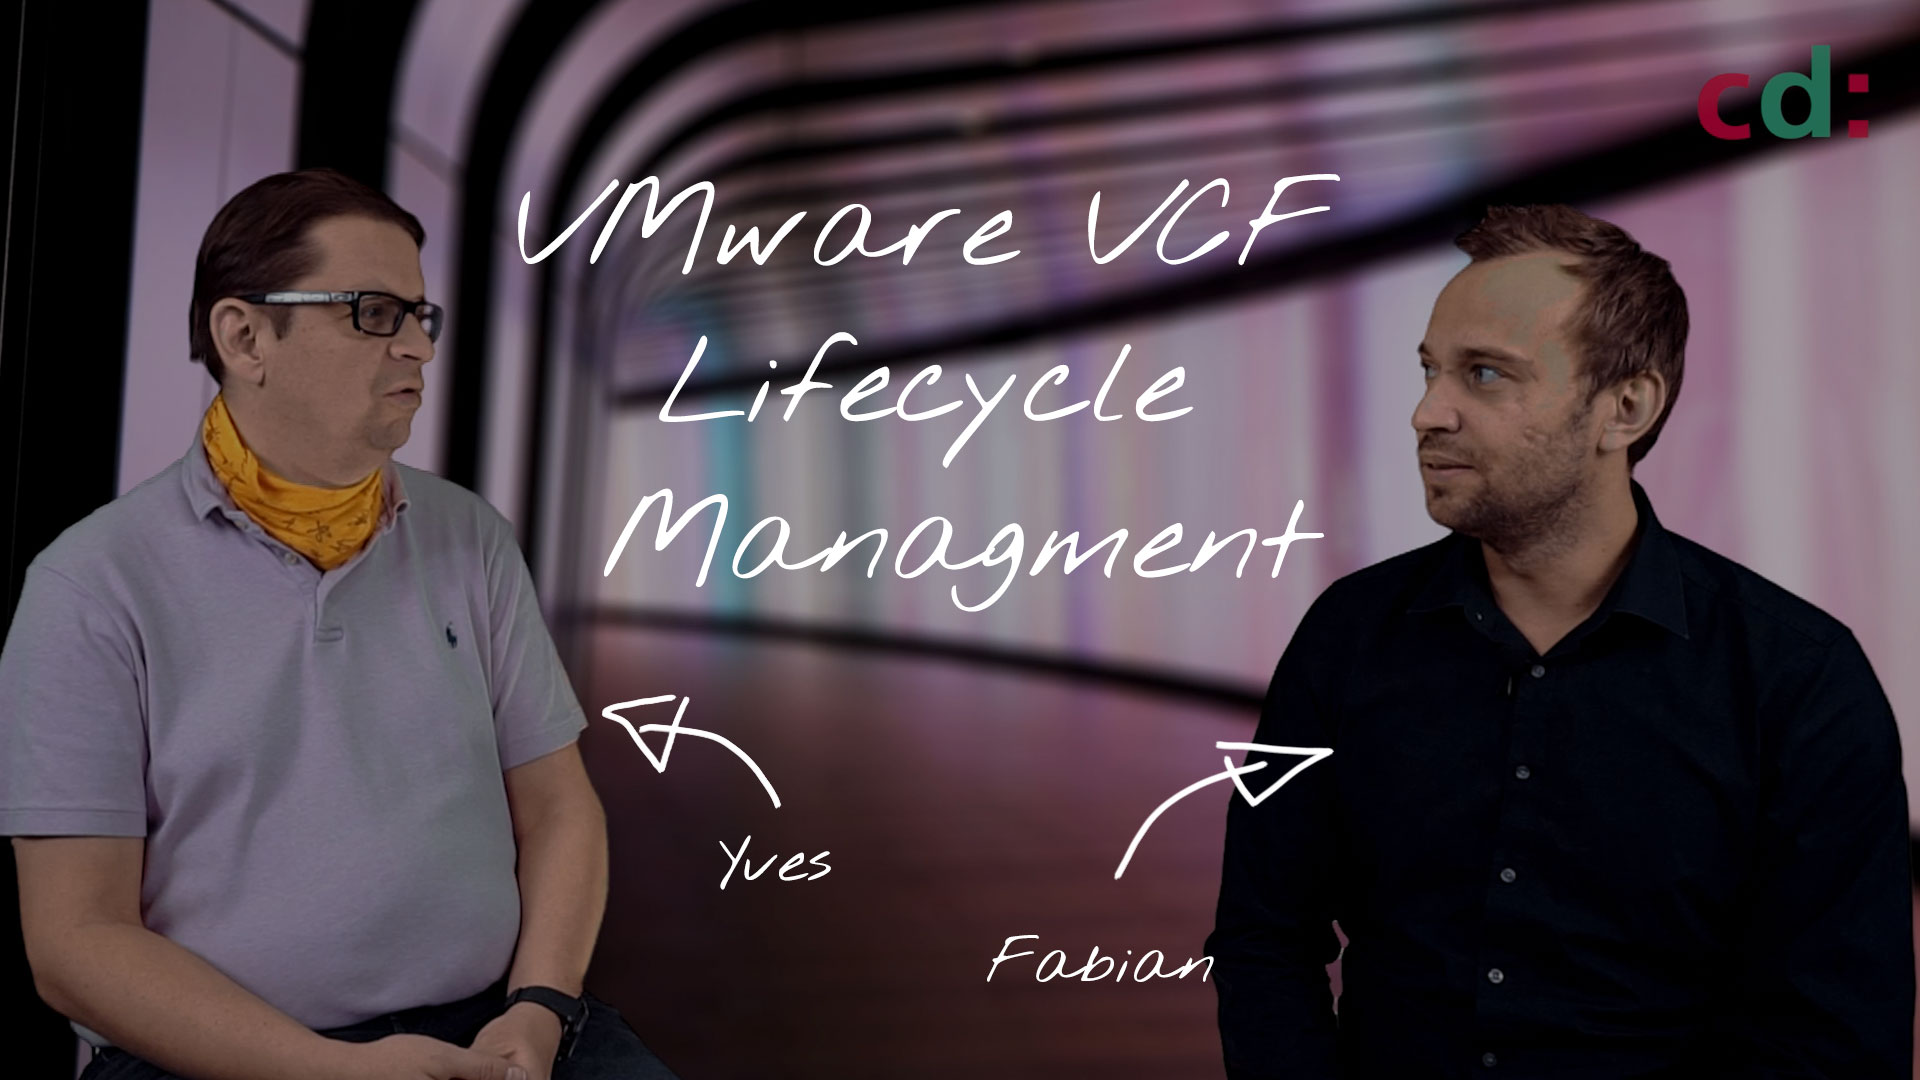 Fire Side Chat zum Thema Lifecycle Management